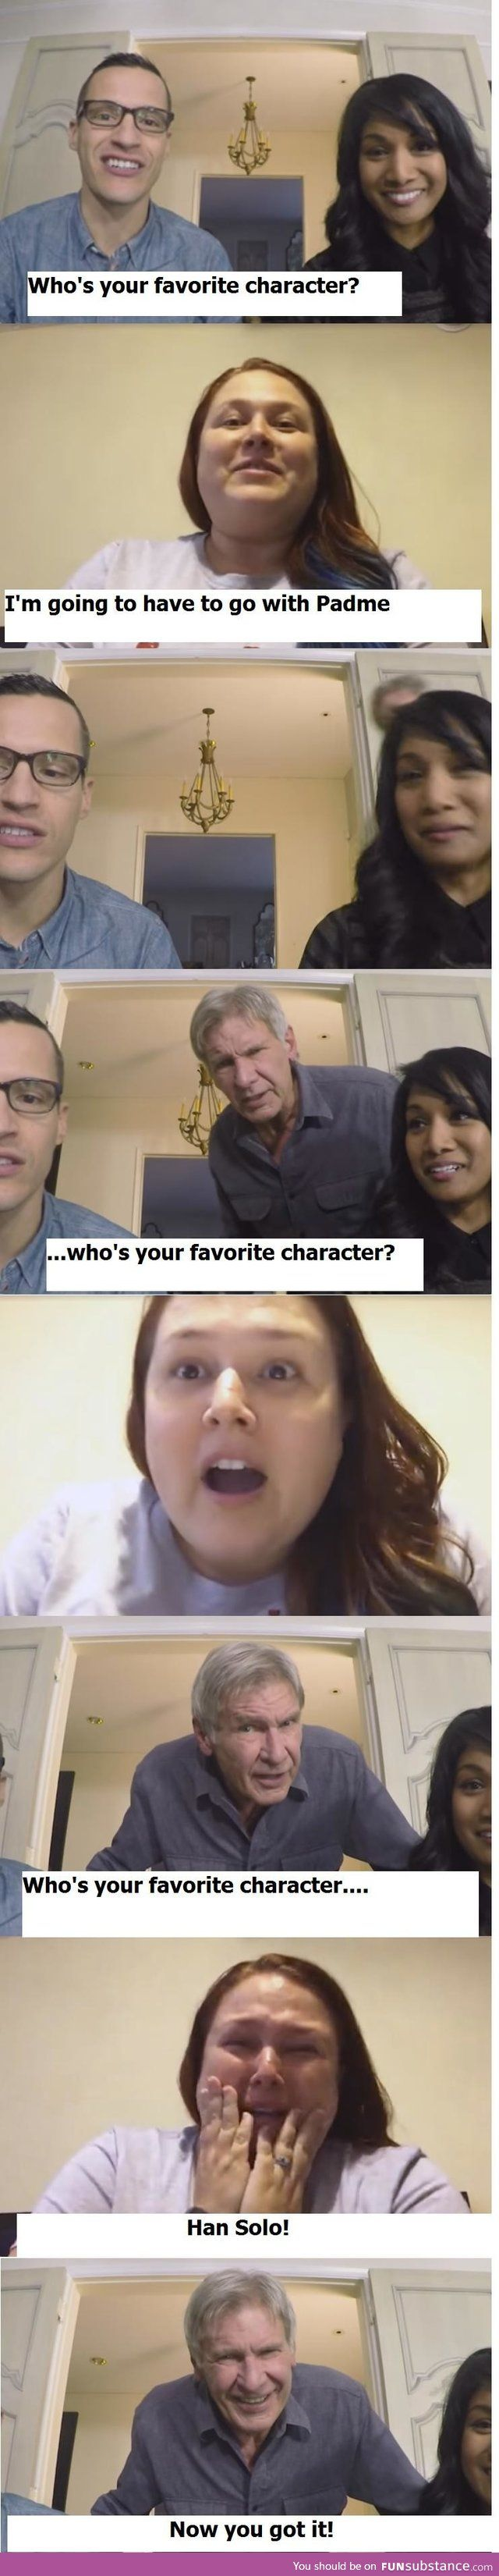 Who's your favorite Star Wars character? Han Solo always